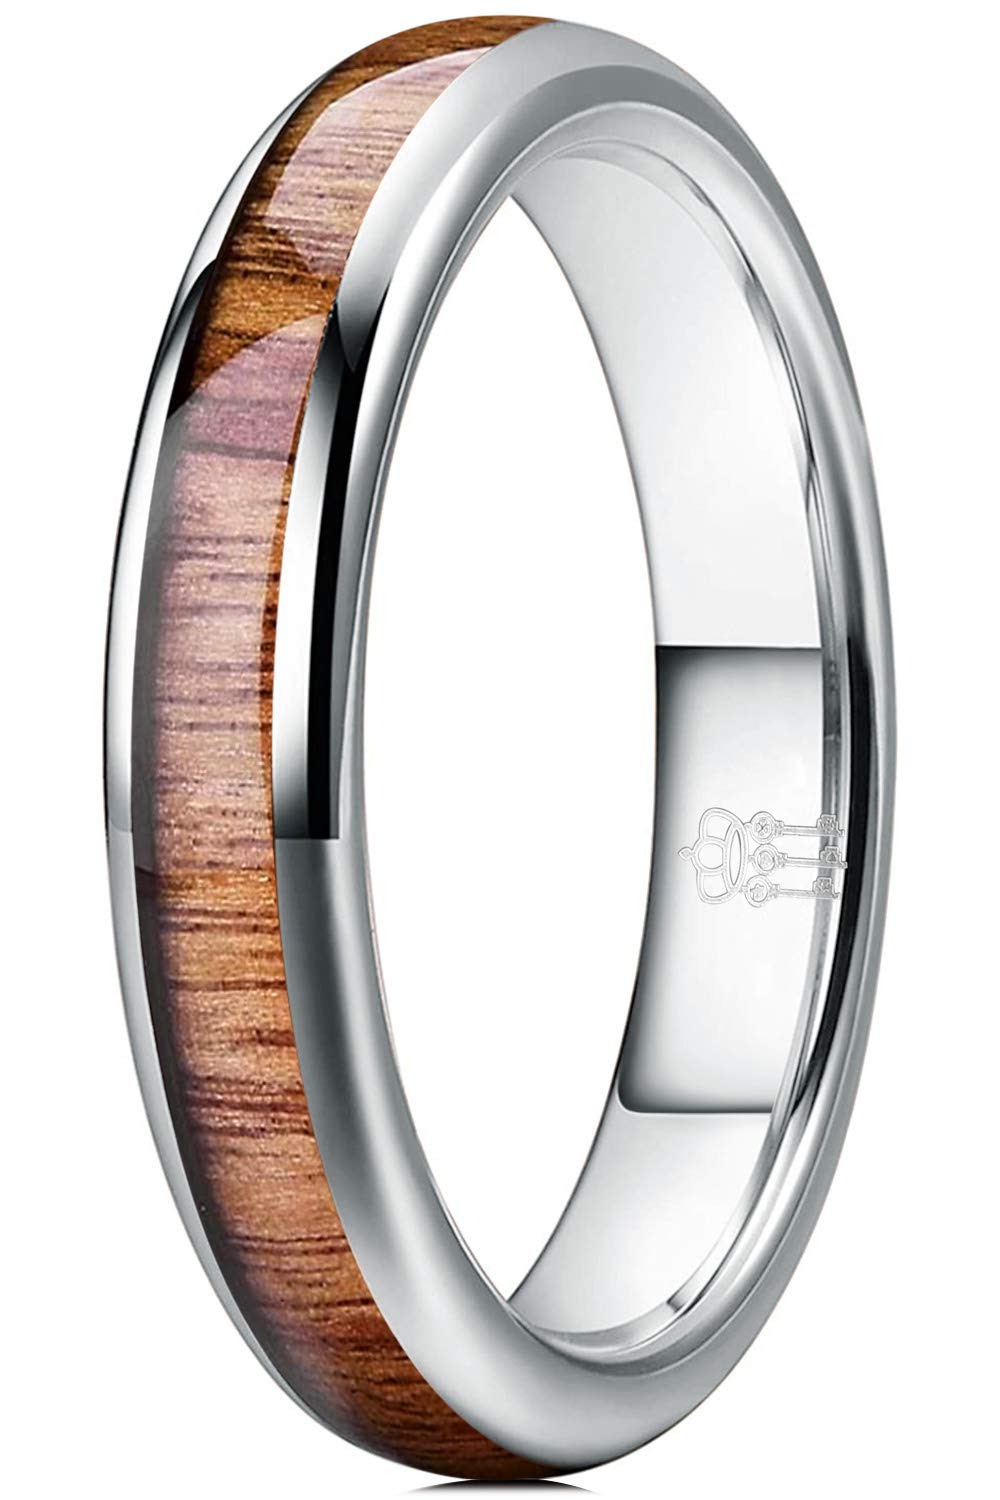 THREE KEYS JEWELRY 4mm 6mm 8mm Tungsten Wedding Ring Domed with Real Koa Wood Inlay Silver Band